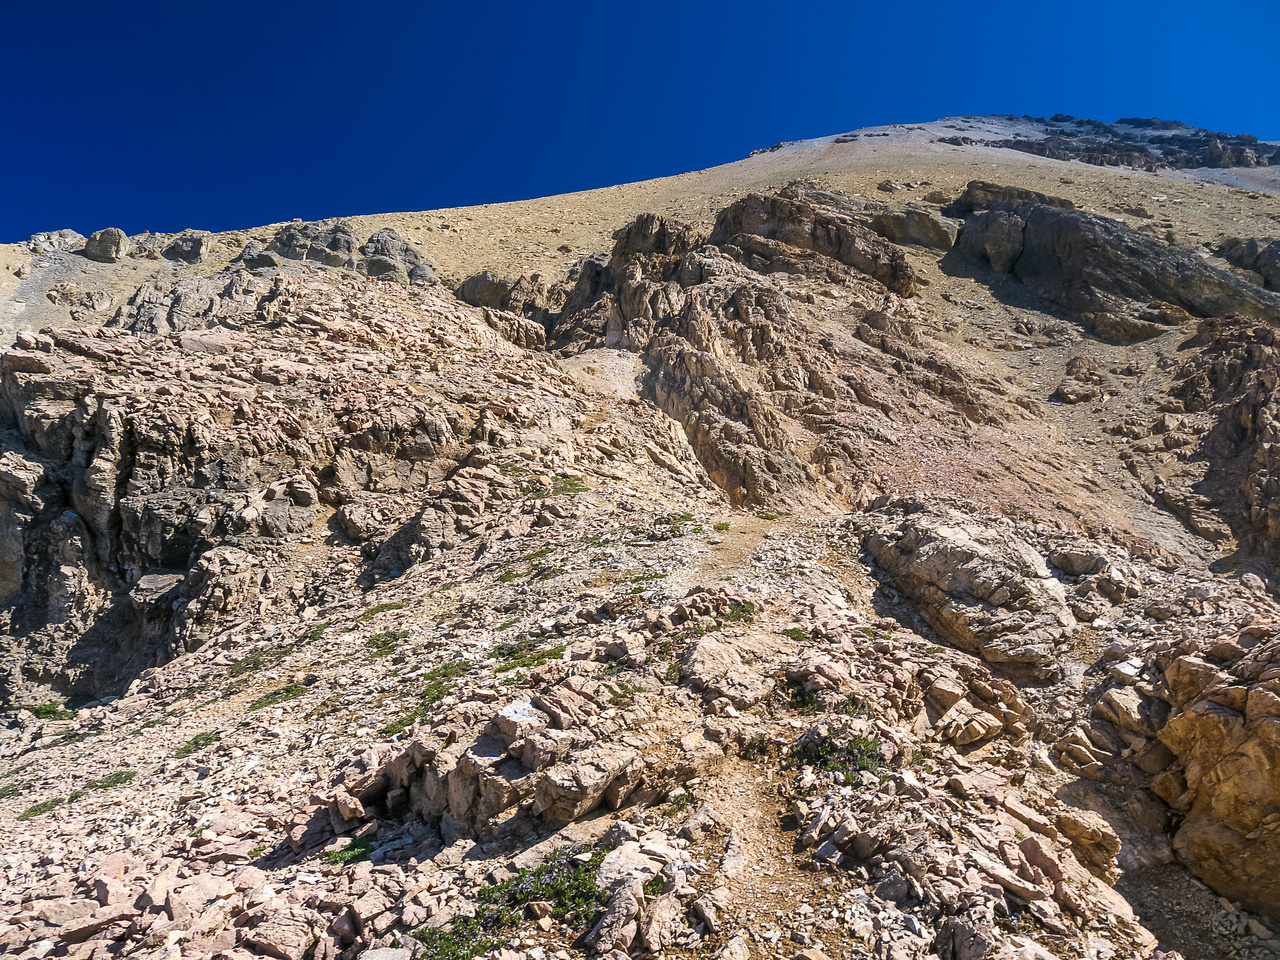 More easy scree slopes up to the summit ridge.